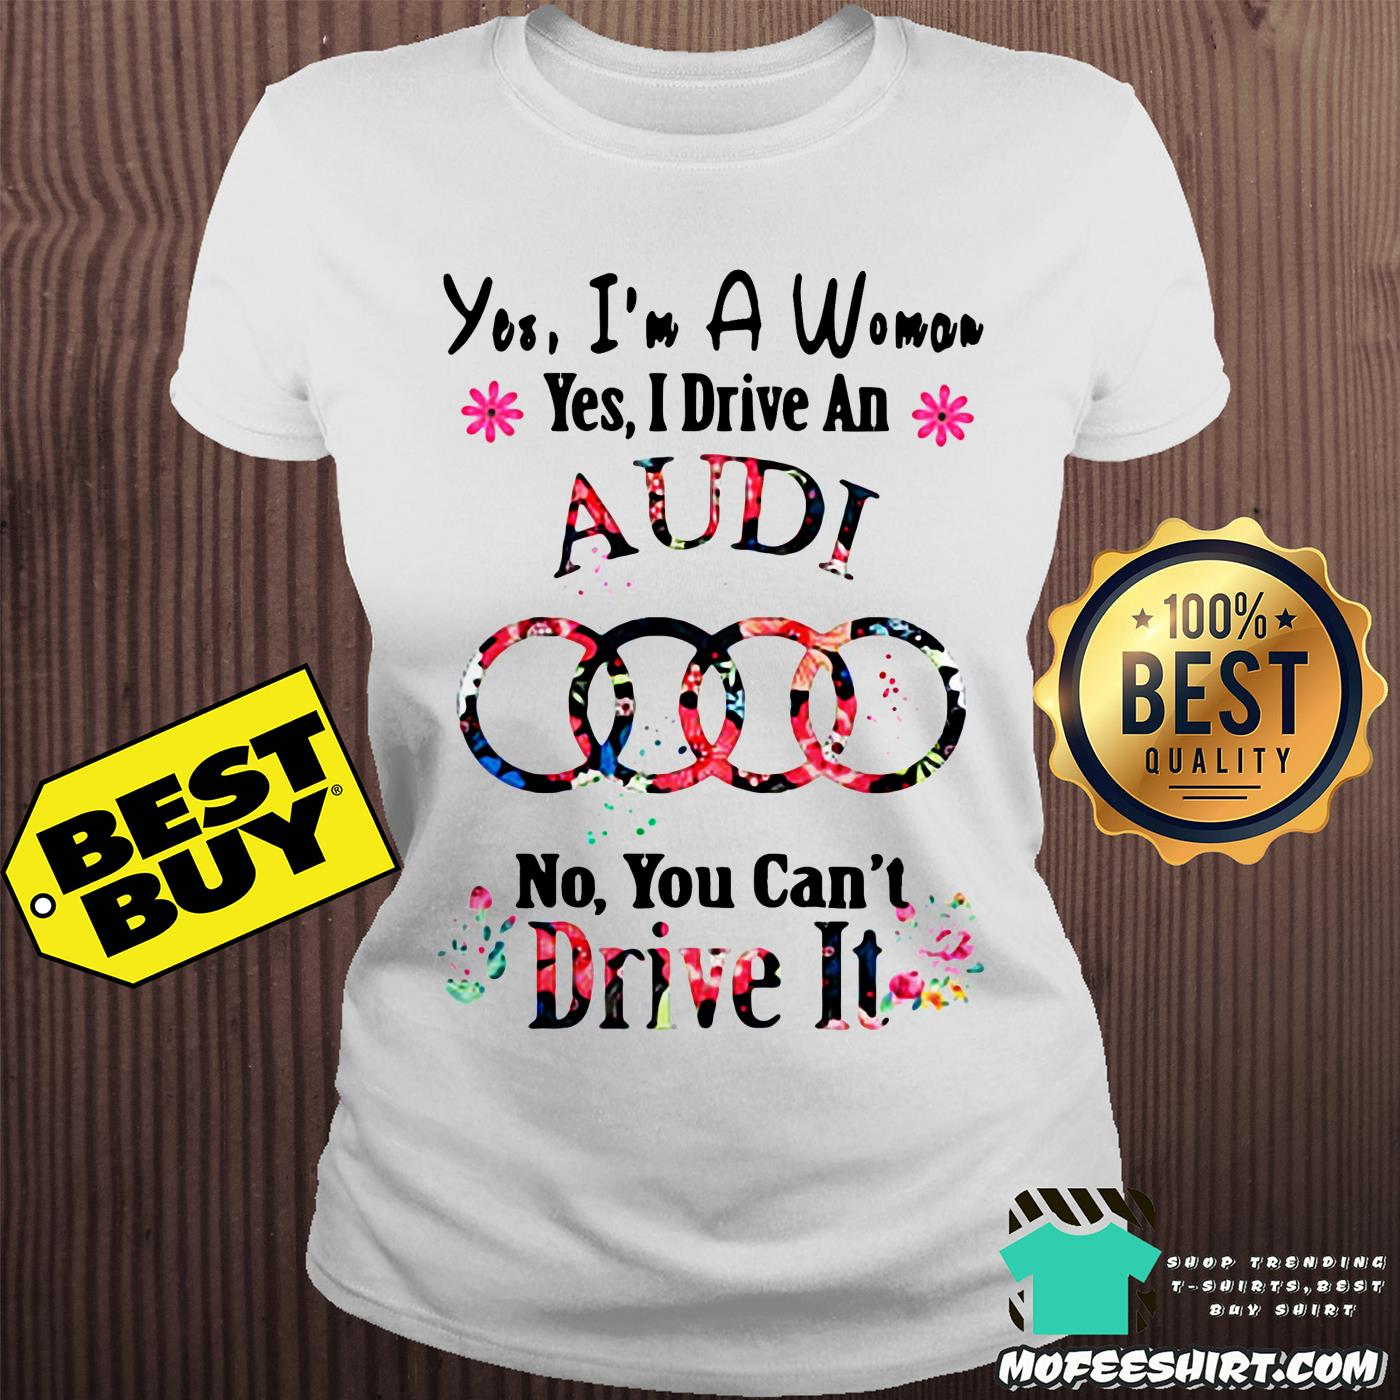 yes im a woman yes i drive an audi no you cant drive it flower ladies tee - Yes, I'm a woman yes I drive an Audi no you can't drive it flower shirt